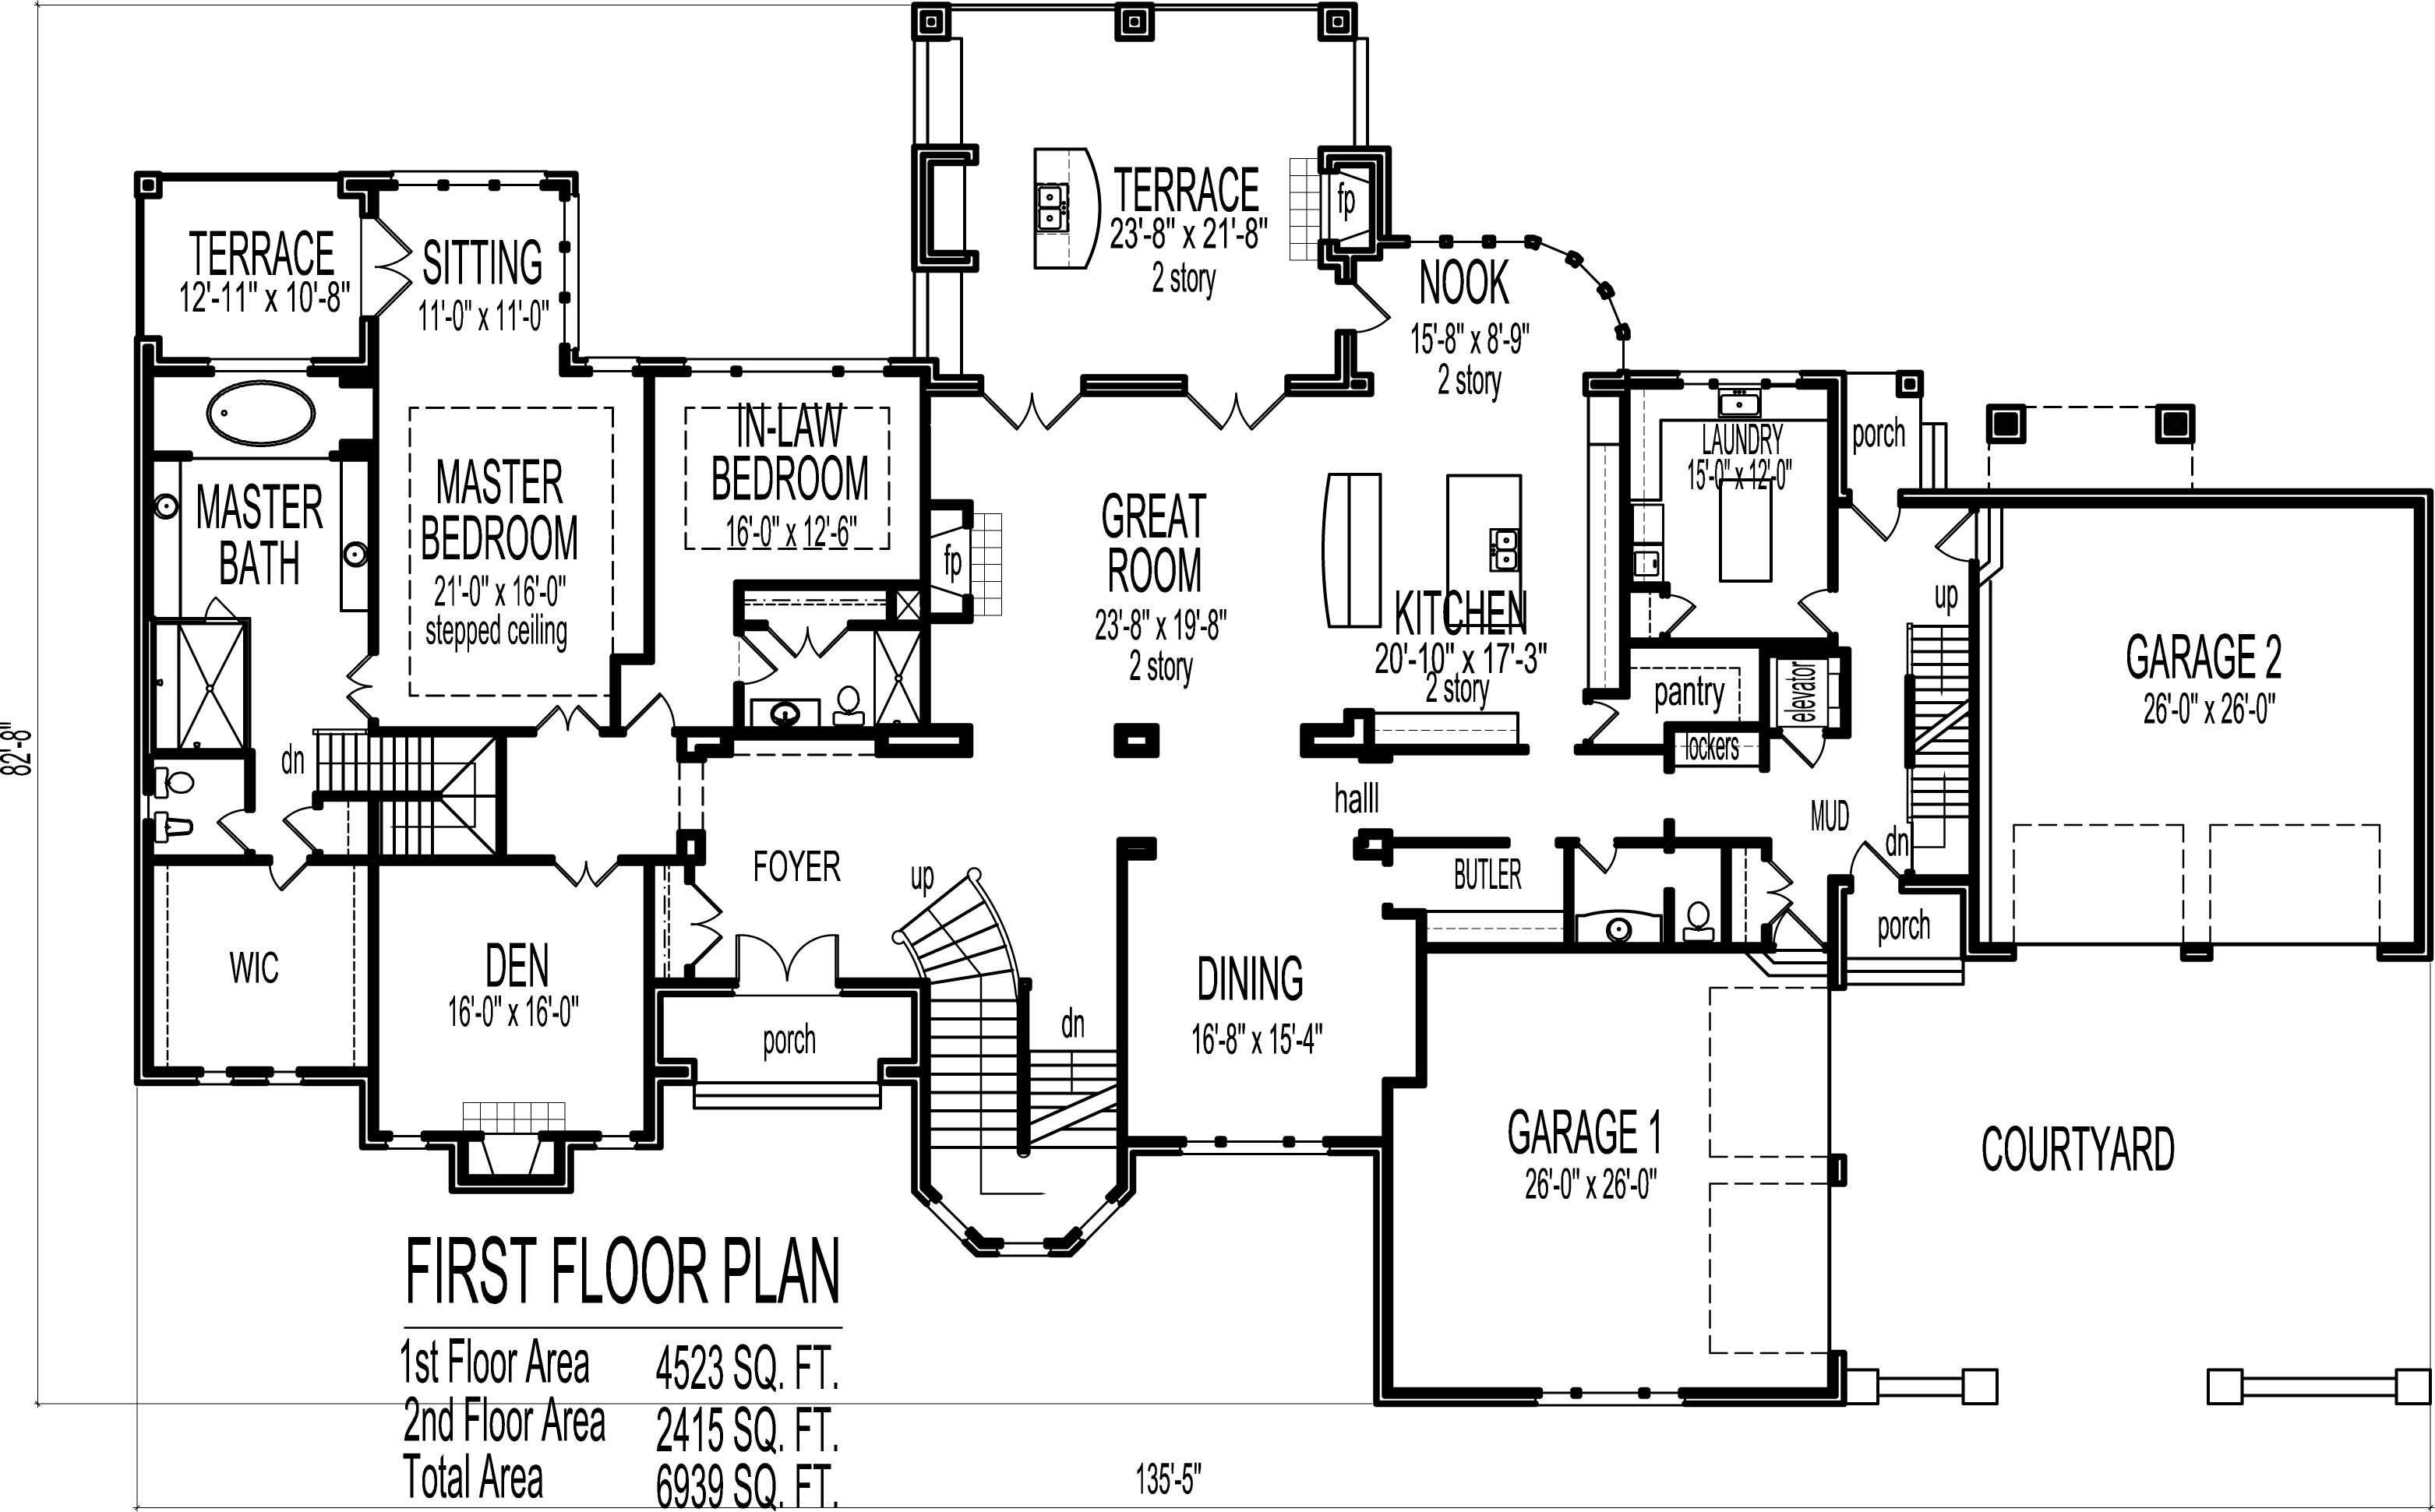 6 bedroom house plans blueprints 6 bedroom house plans 3d for 6 bedroom home plans